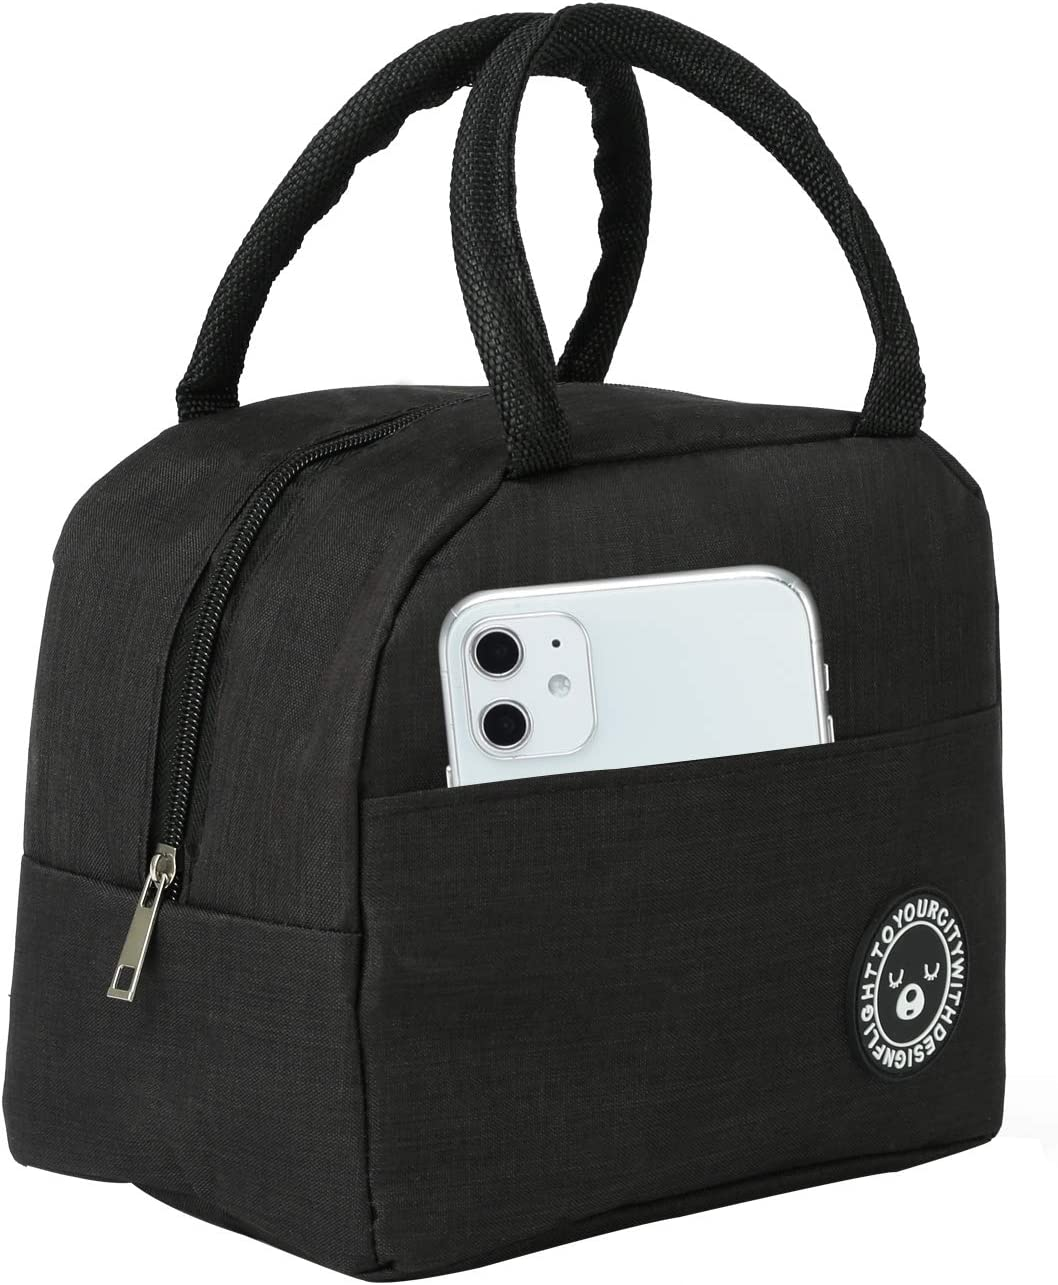 Lunch Bags For Women,Large Capacity Insulated Lunch Bag, Suitable For Women, Men, Students, Work, Office, Leisure